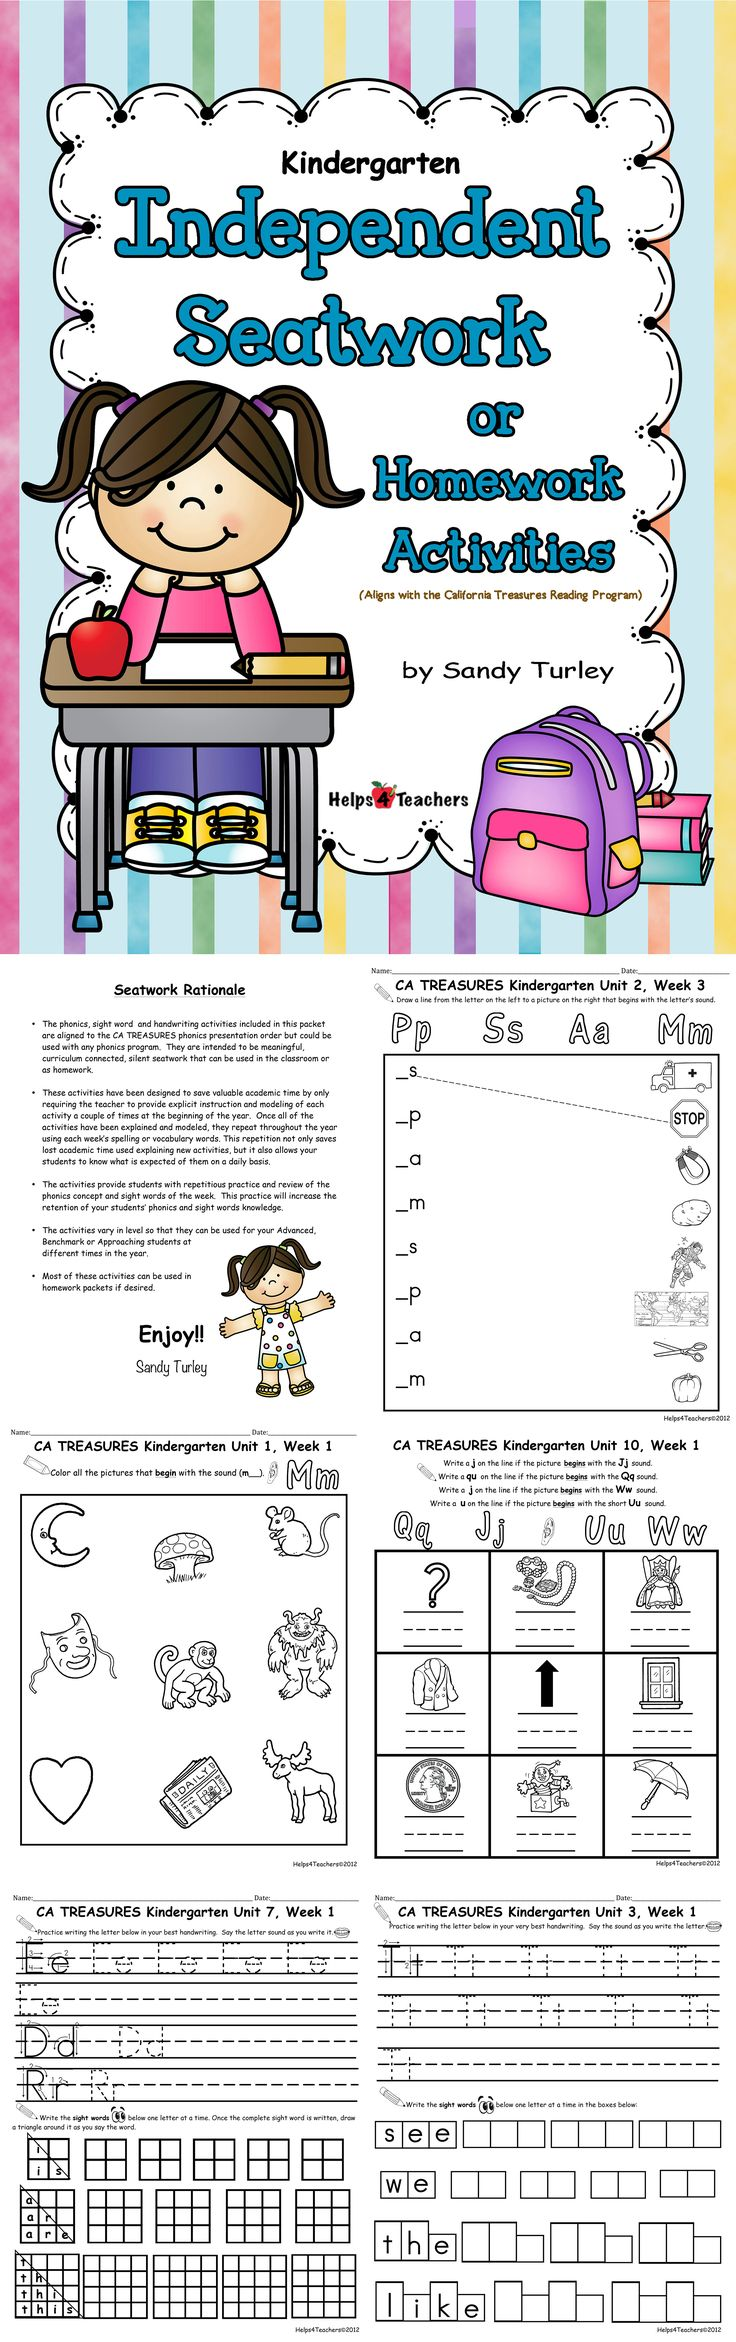 $ AWESOME!!  This E-Book contains Phonics, Sight Word and Handwriting printable activity sheets. (It is aligned with the California Treasures Reading Program but would be great review for any Kindergarten Reading program). Includes phonics, sight words and handwriting.  This includes everything you need for the WHOLE YEAR!!!  Found at:  http://www.teacherspayteachers.com/Store/Helps4teachers